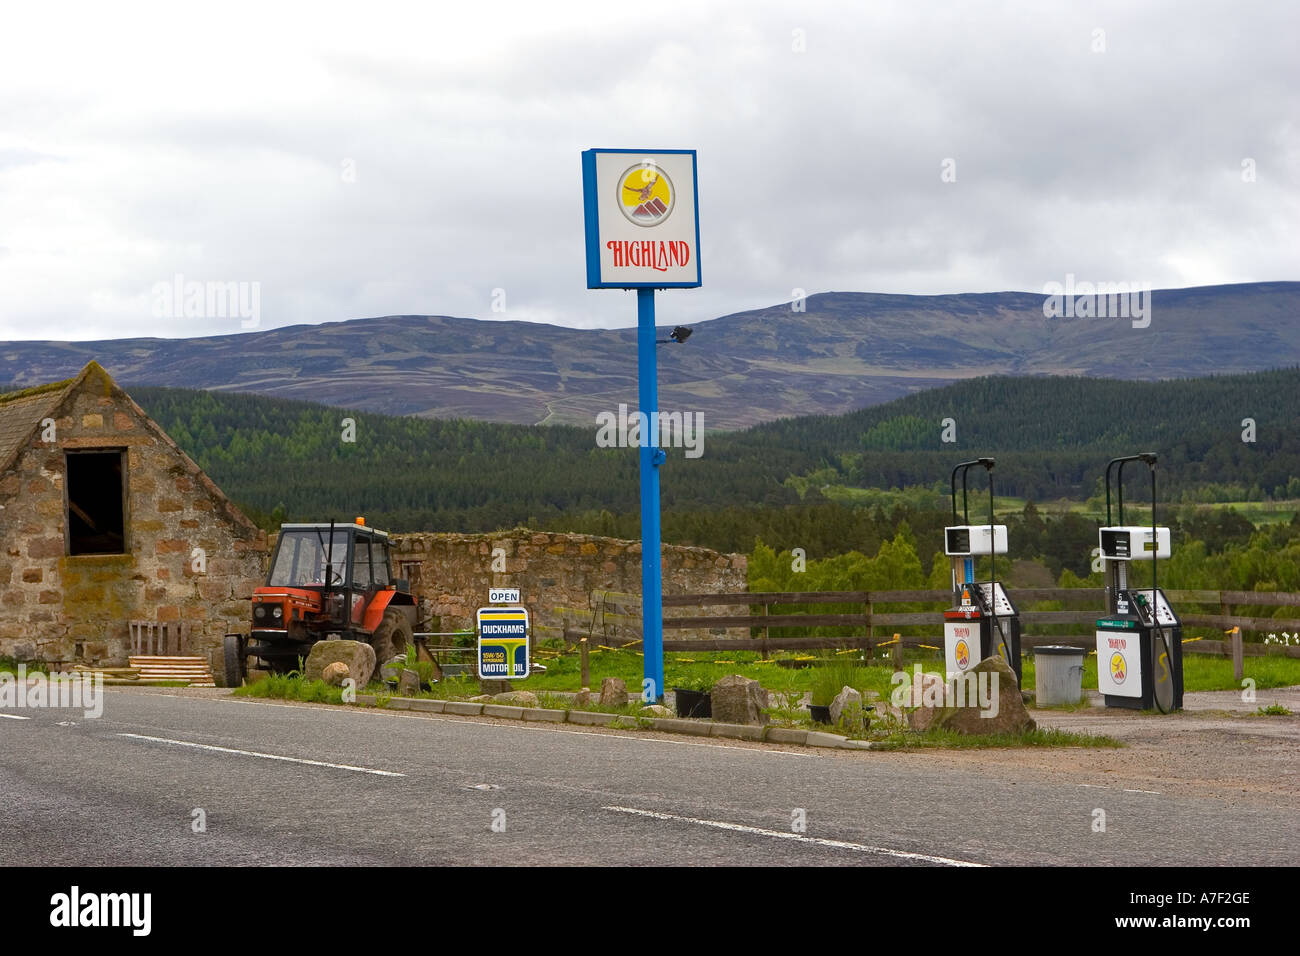 petrol station uk country photos petrol station uk country images alamy. Black Bedroom Furniture Sets. Home Design Ideas